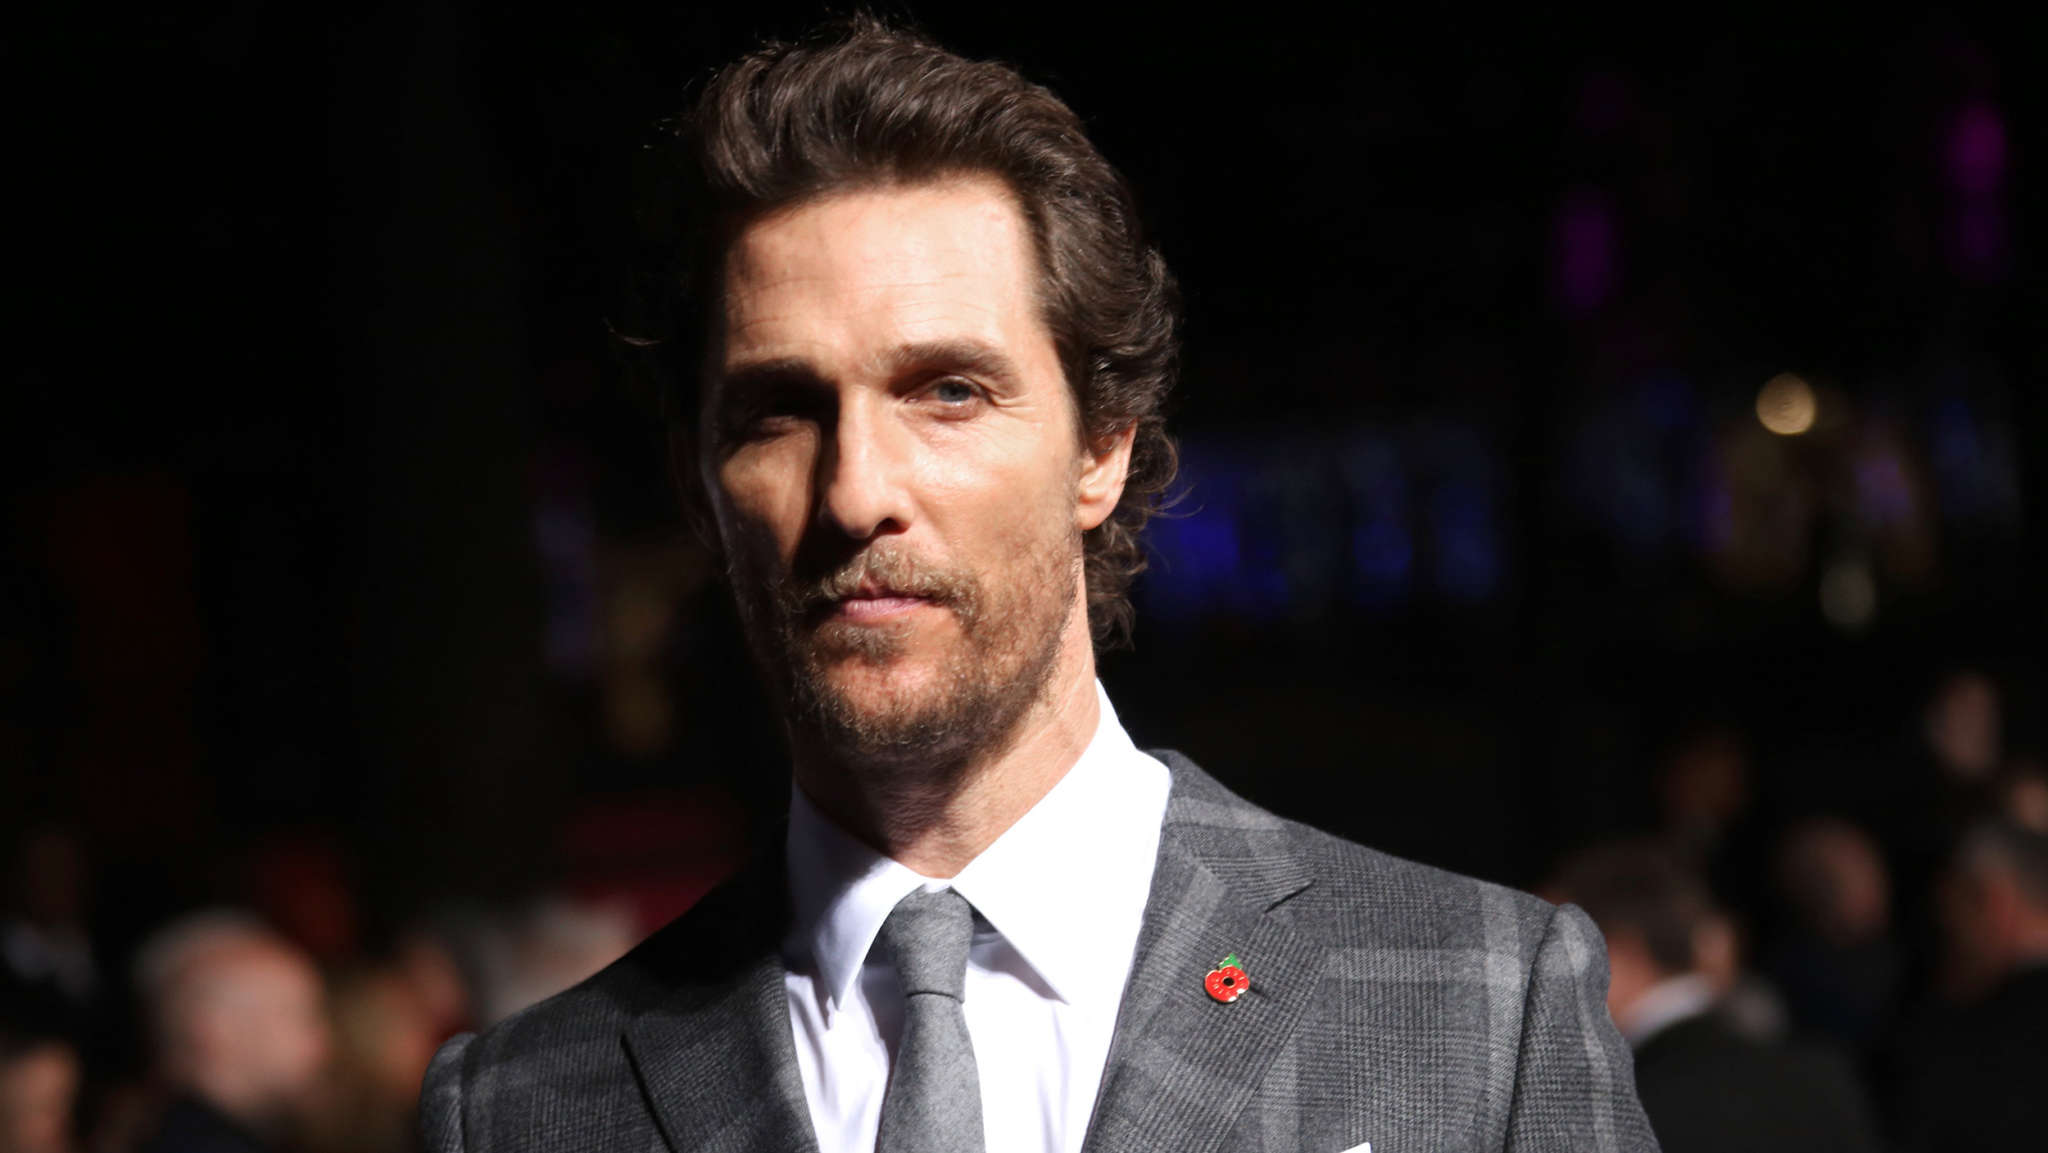 matthew-mcconaughey-says-hollywood-stars-are-hypocrites-for-2020-and-2016-election-results